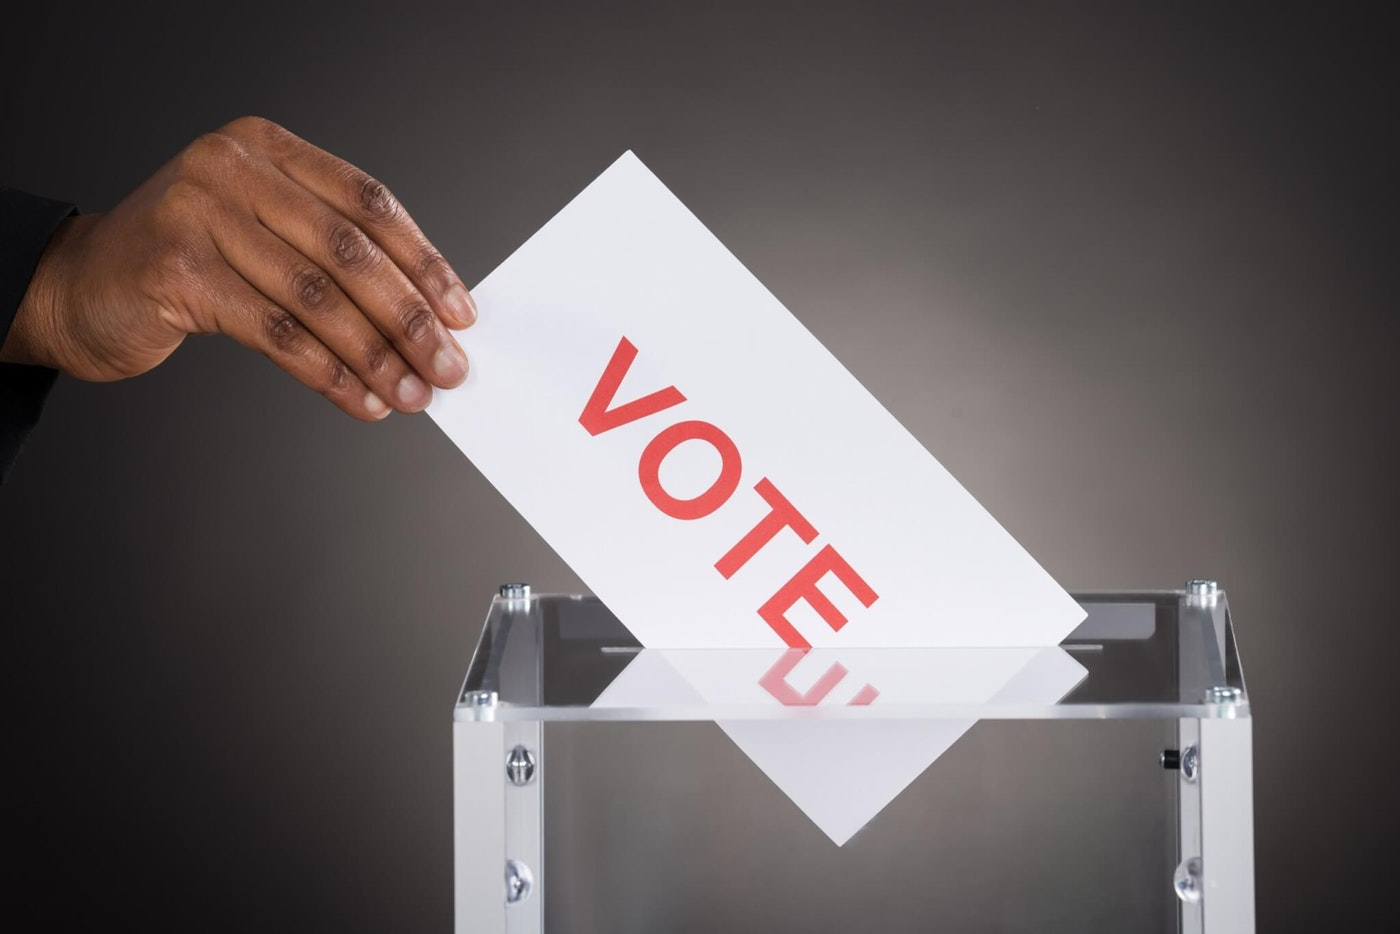 The results will bypass voting machines to confirm the results of the election.